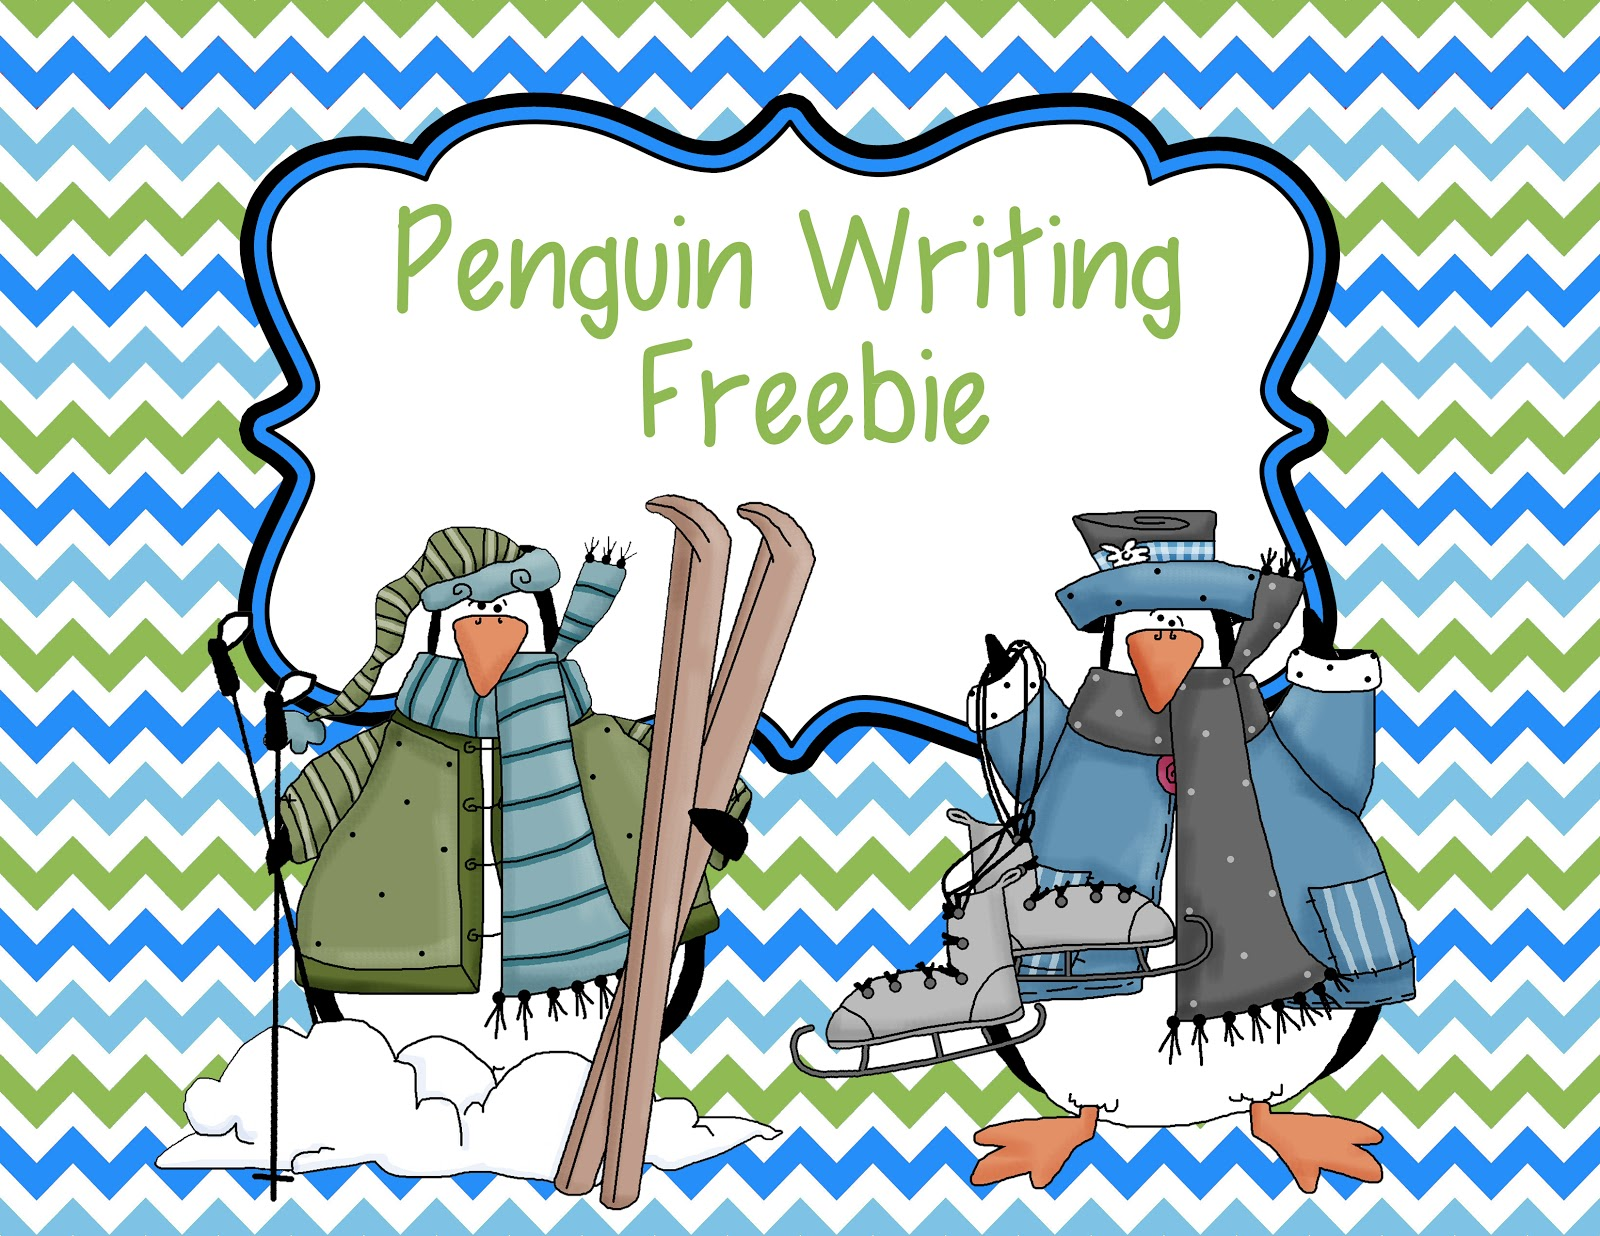 sentence writing paper Free, printable lined writing paper for kids over 1,500 ela worksheet lesson activities for class or home use click to get started.